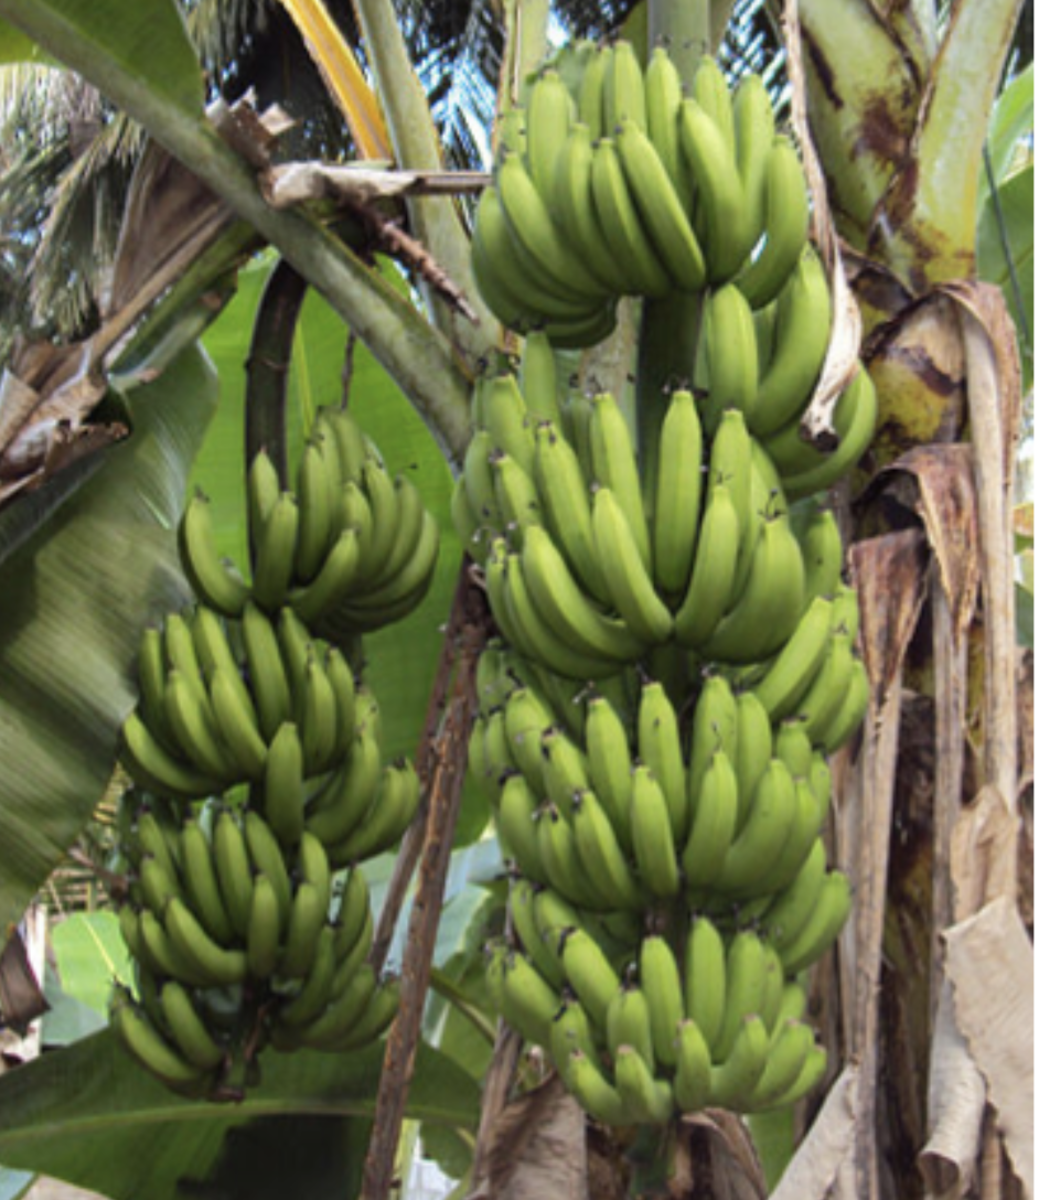 Plantains hanging from trees that are ready for harvest.